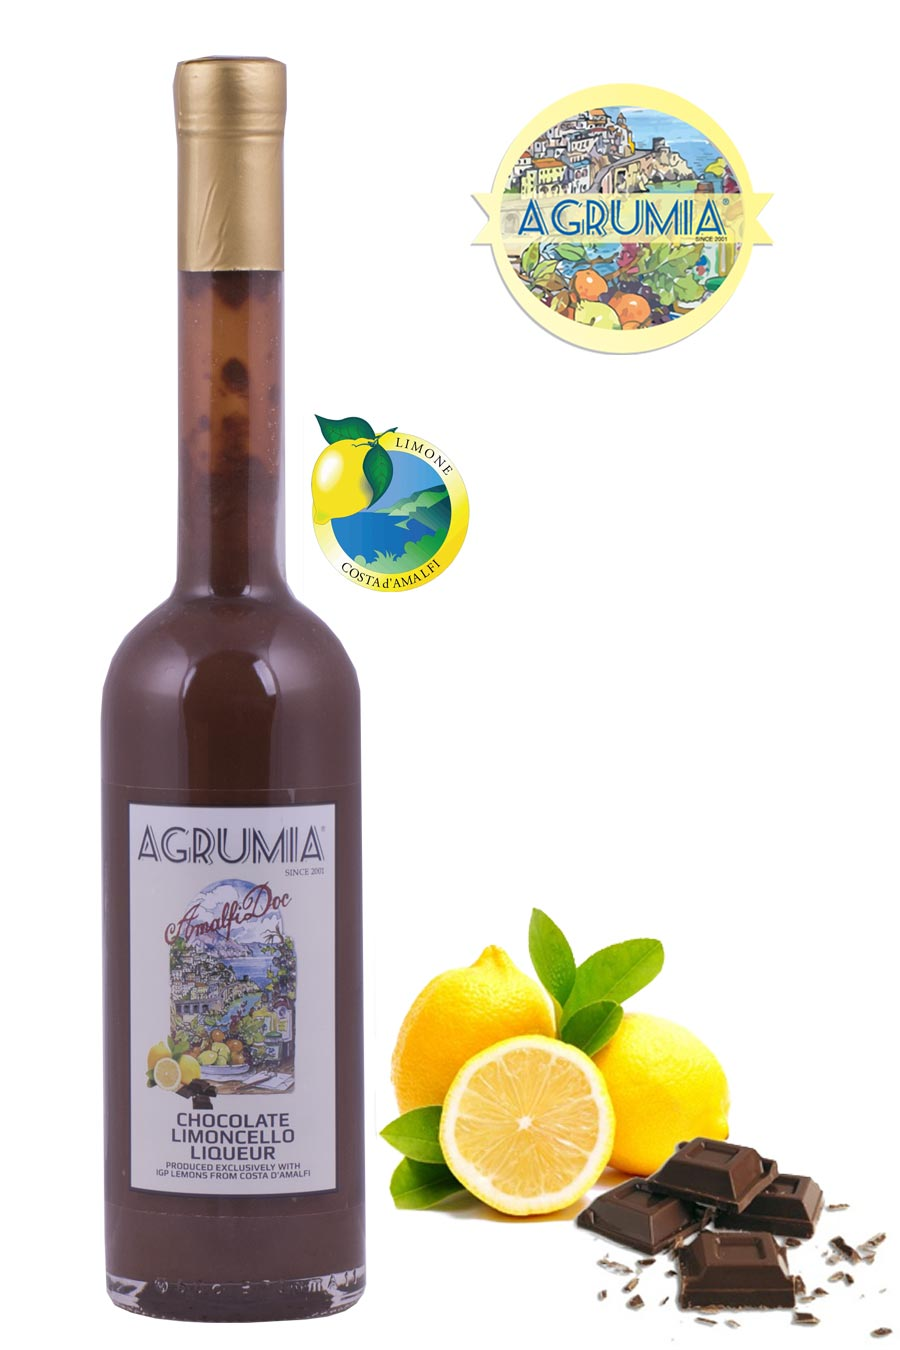 Agrumia Chocolate Limoncello Liqueur 50cl